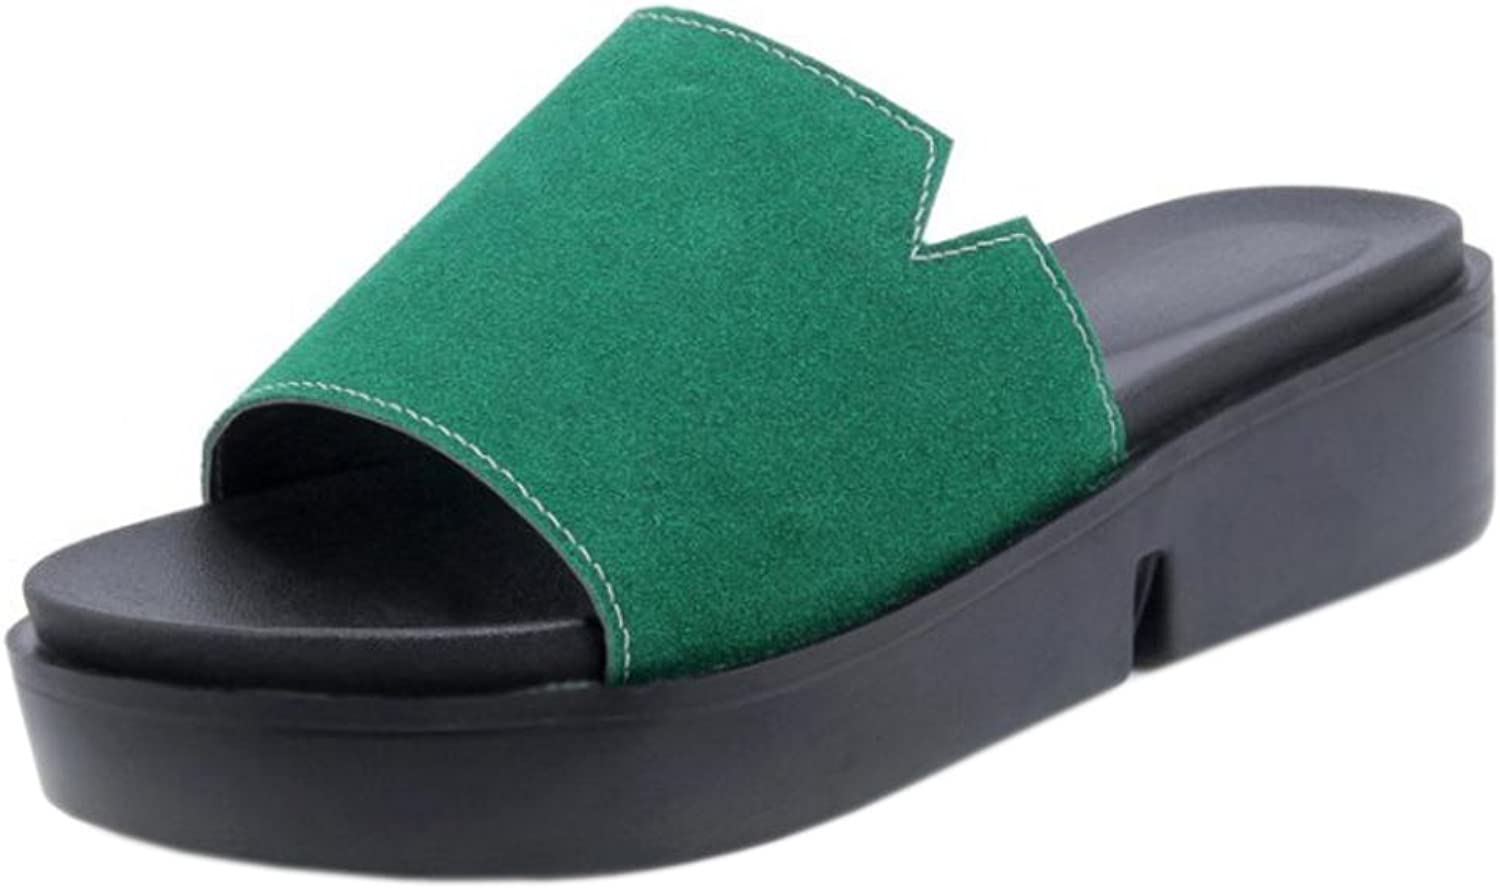 CarziCuzin Women Slide Sandals shoes Open Toe